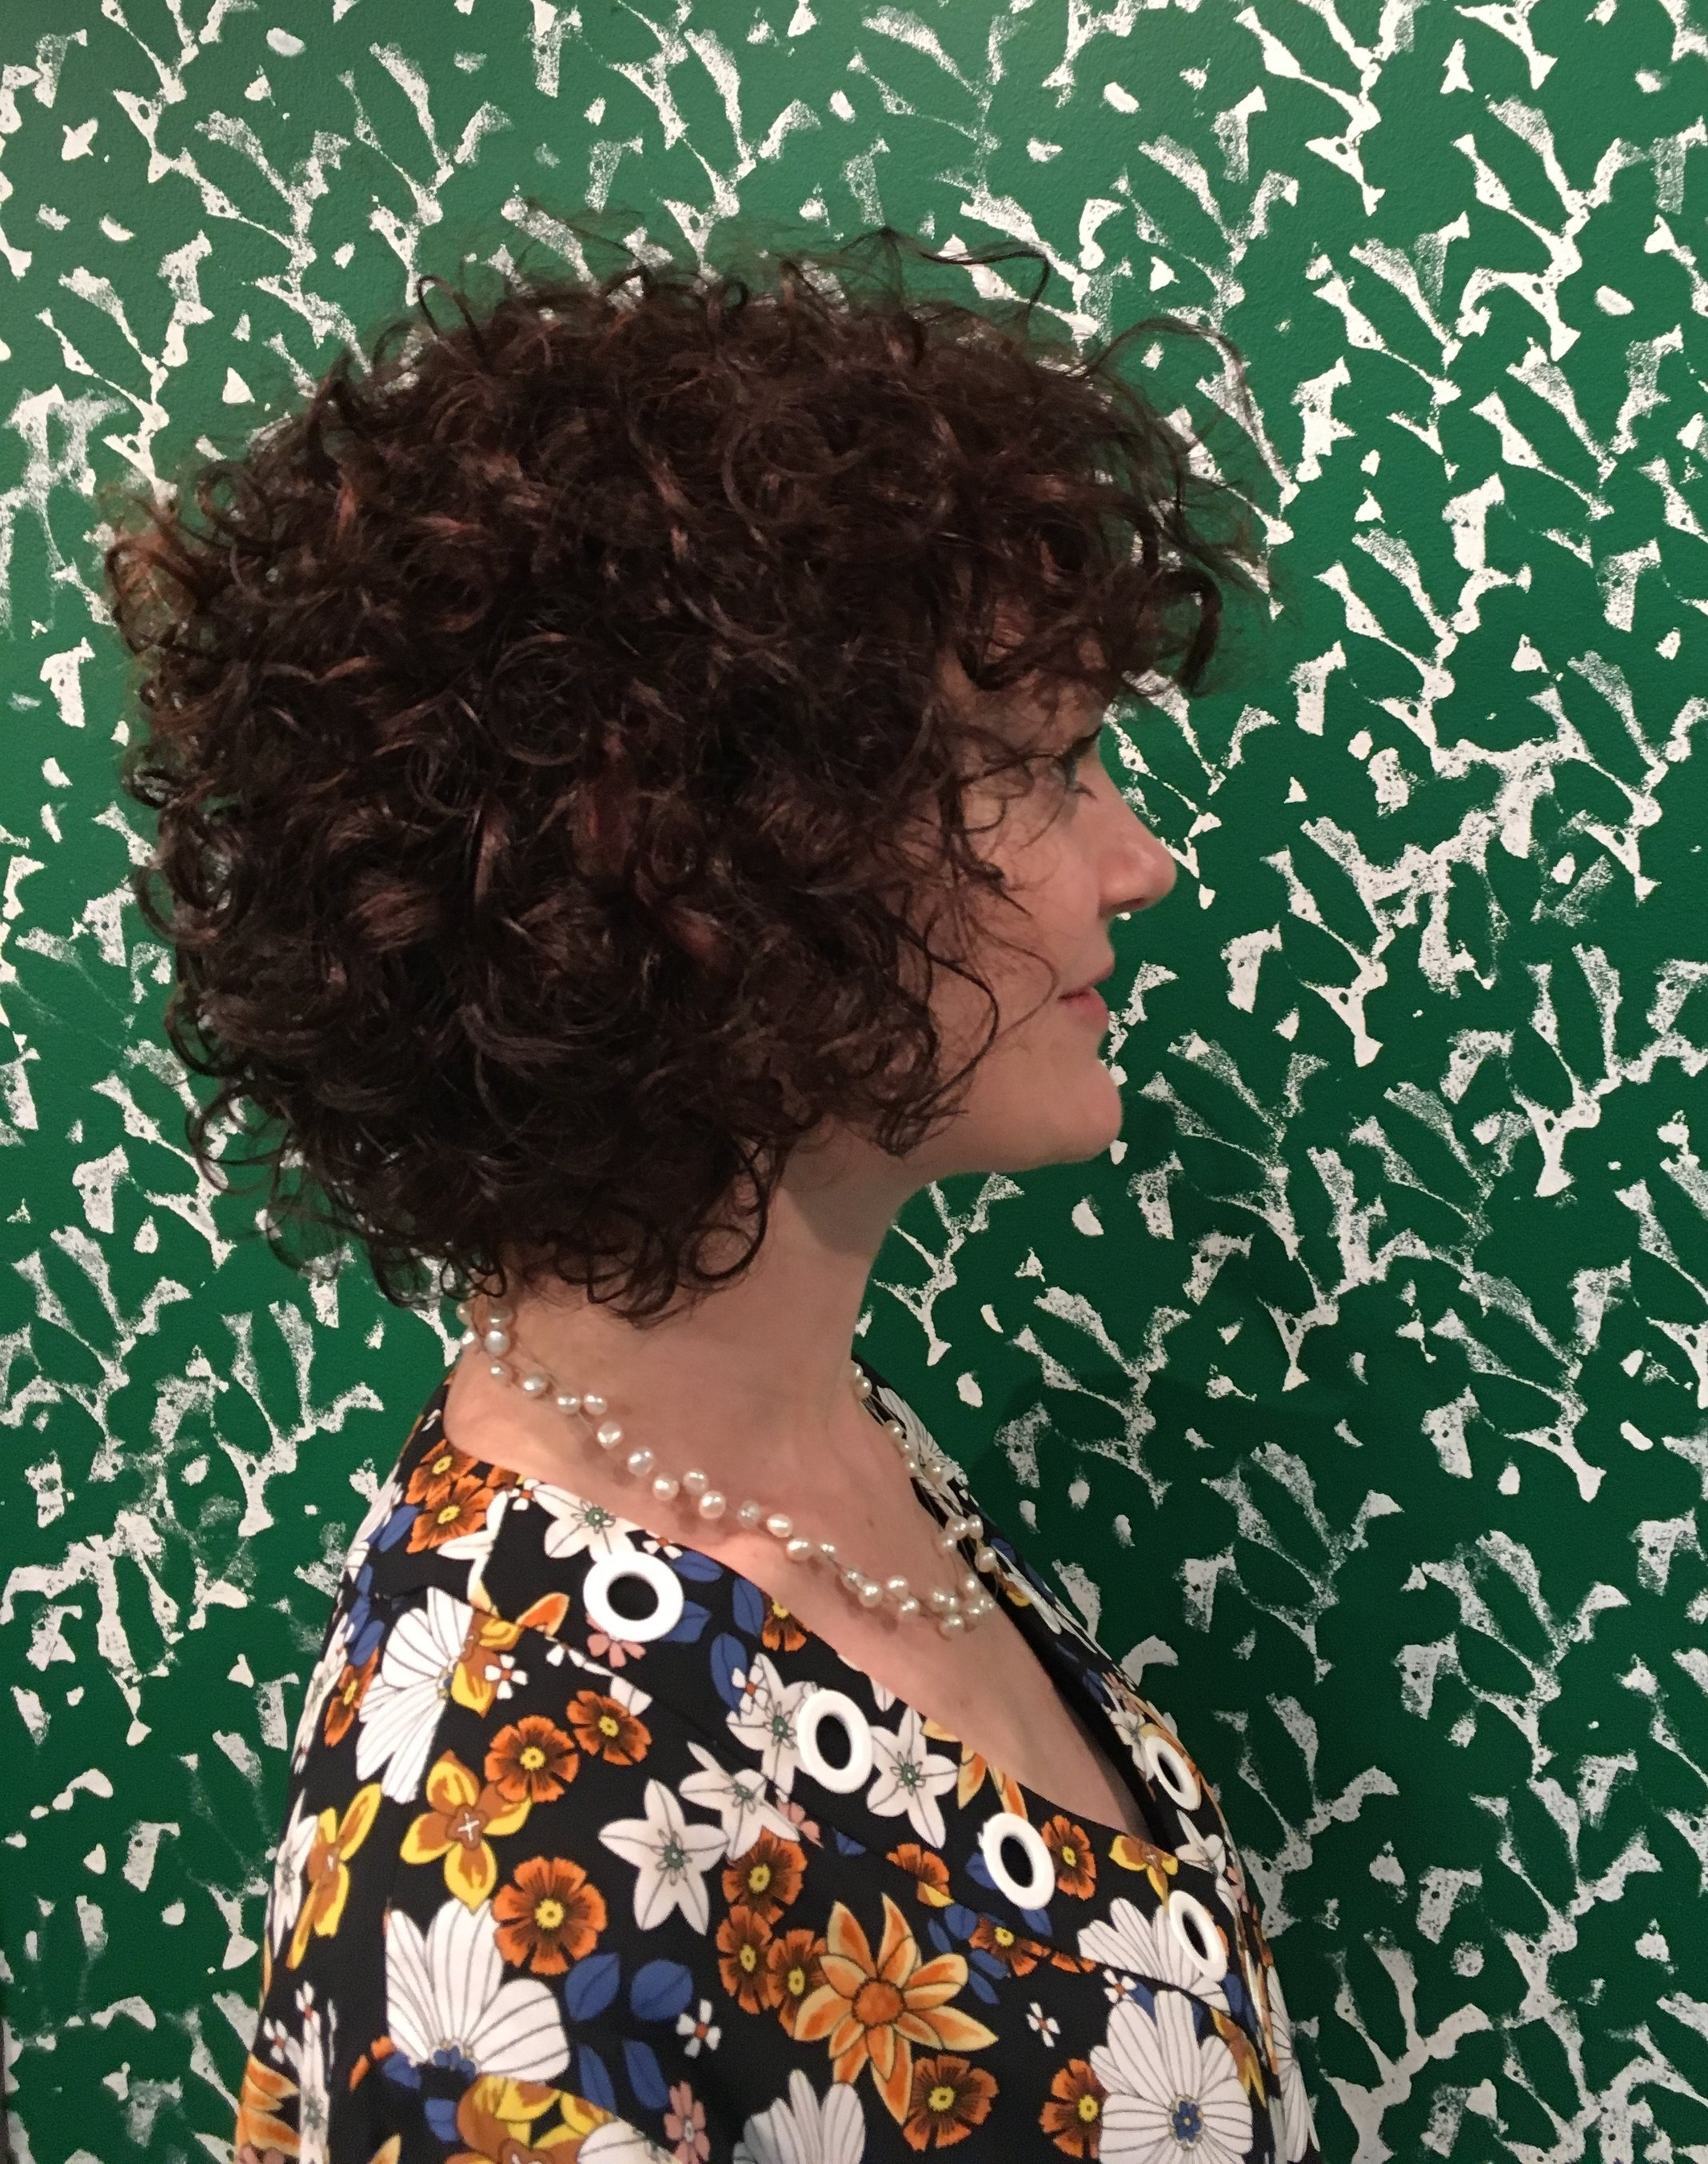 - Curls are back in trend, looking after your curls is easier a than you think. Let's allow nature to shine through.